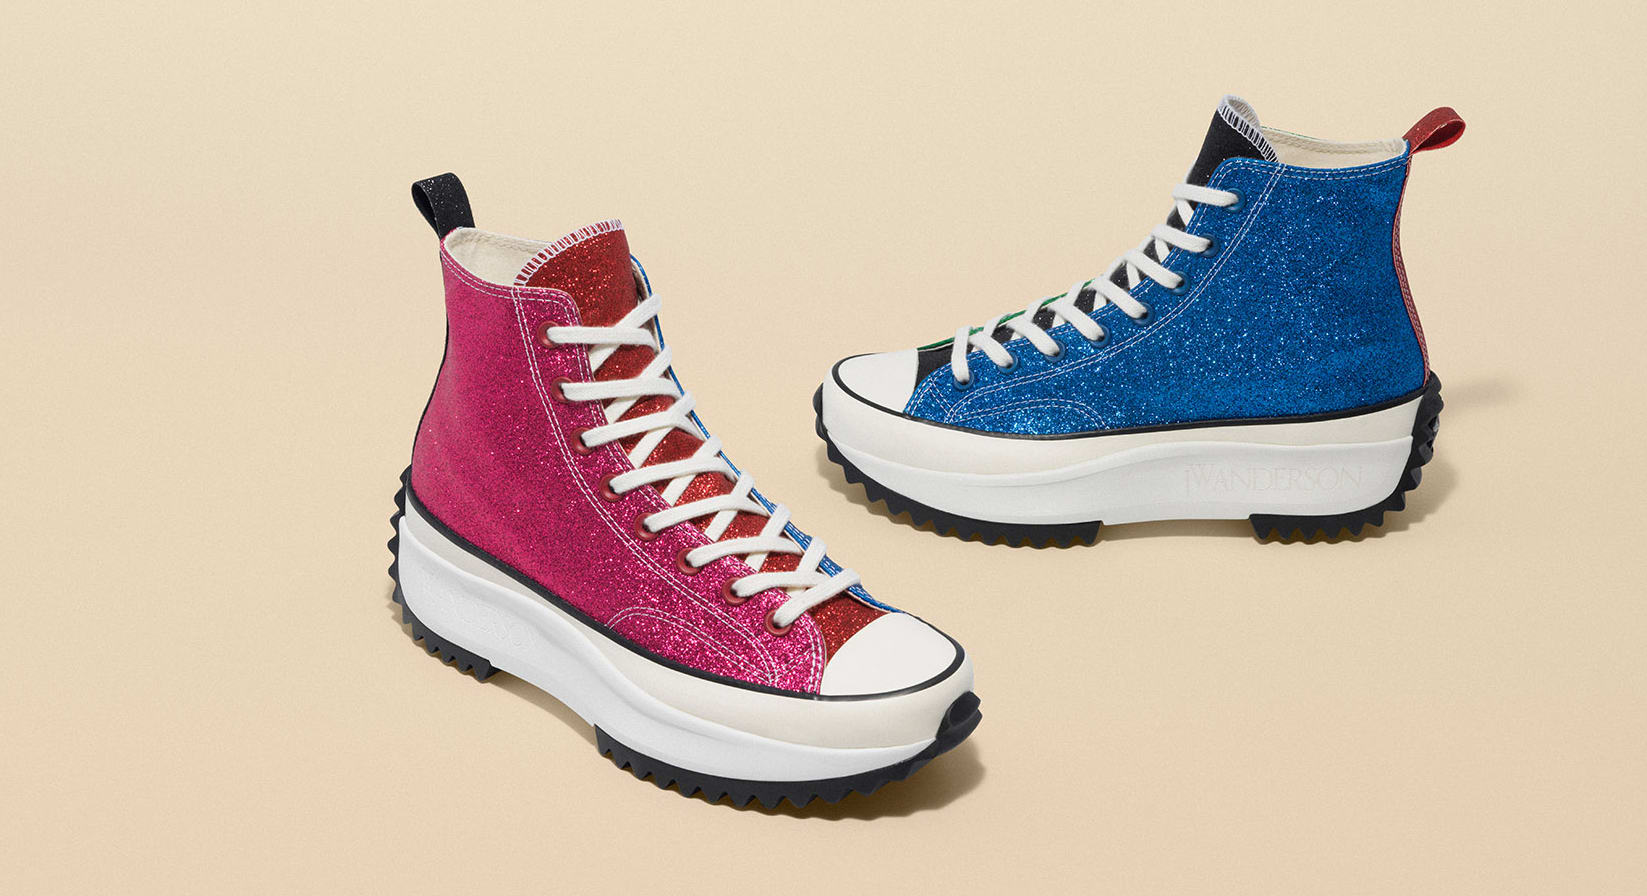 JW Anderson x Converse Run Star Hike 'Glitter' Collection 1